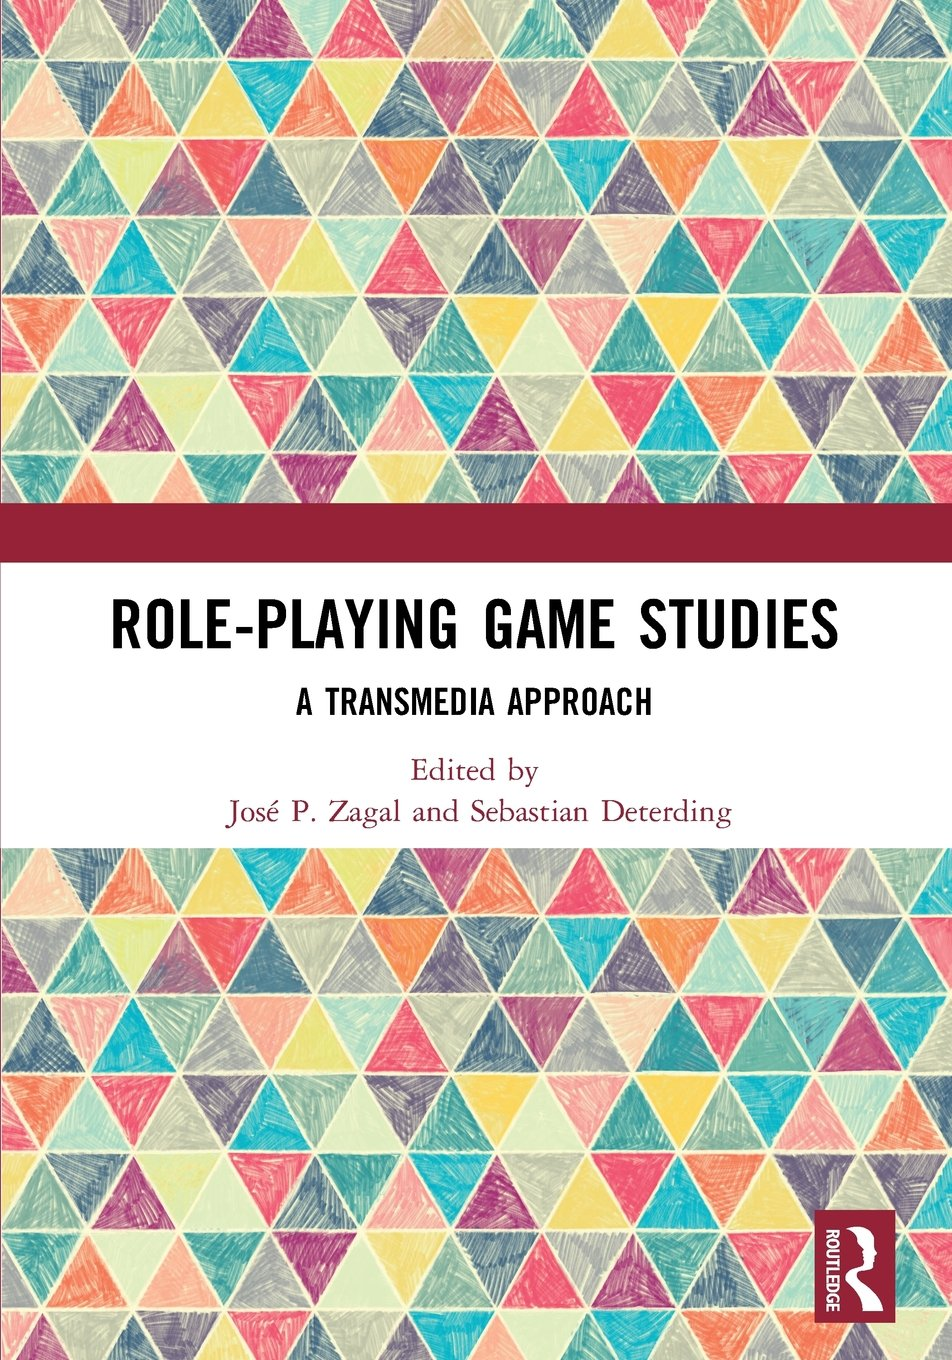 Role-Playing Game Studies - Transmedia Foundations - Cover.png